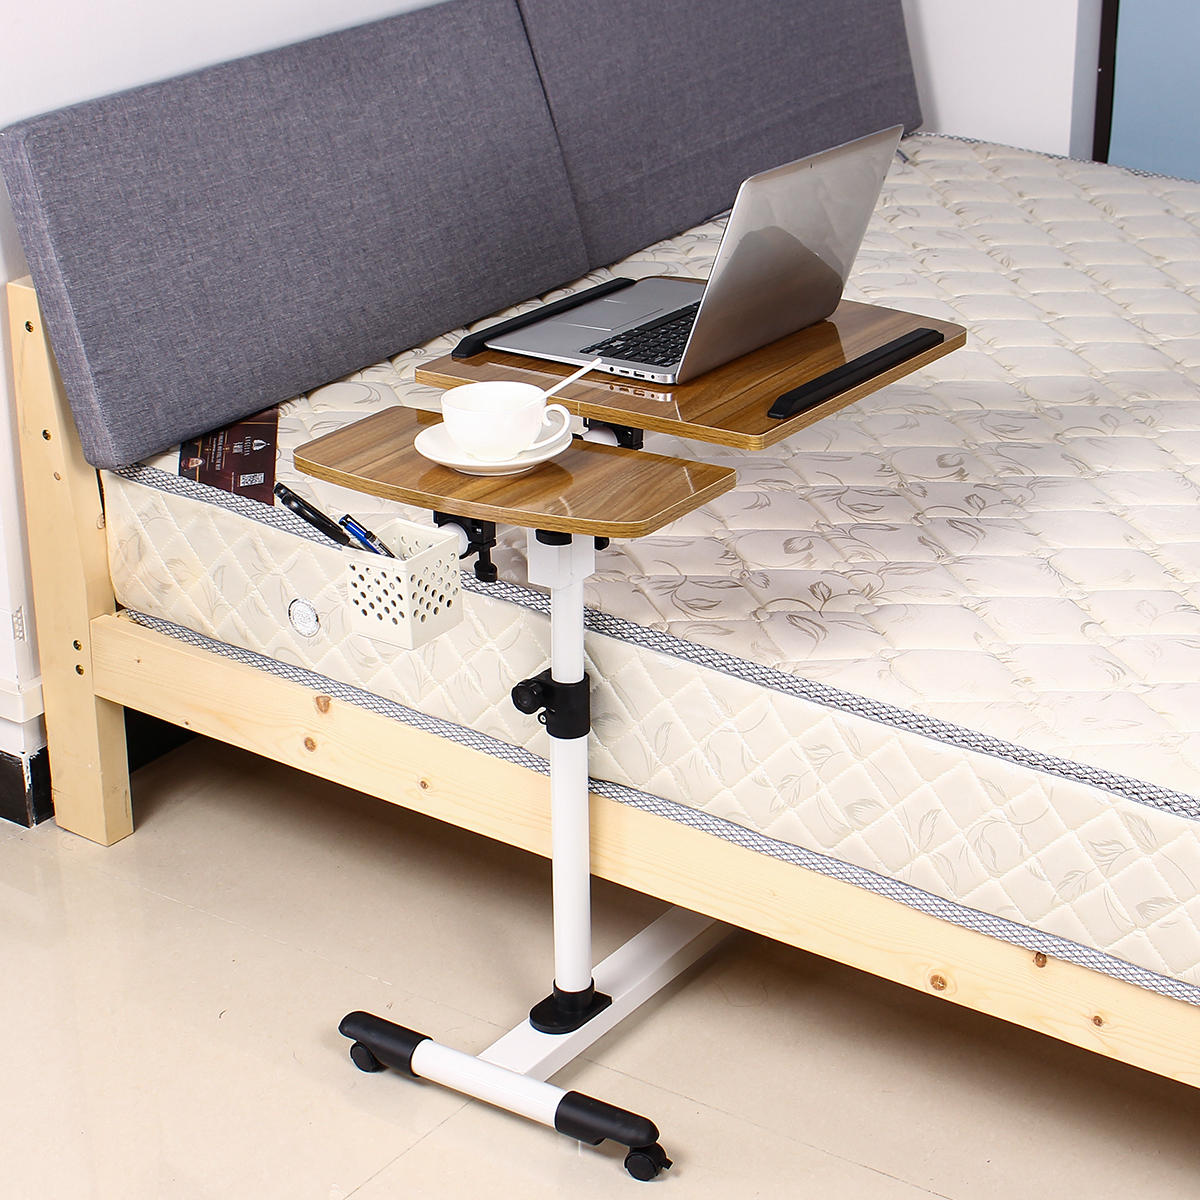 Adjustable Angle /& Height Rolling Laptop Notebook Desk Stand Over Sofa Bed Table